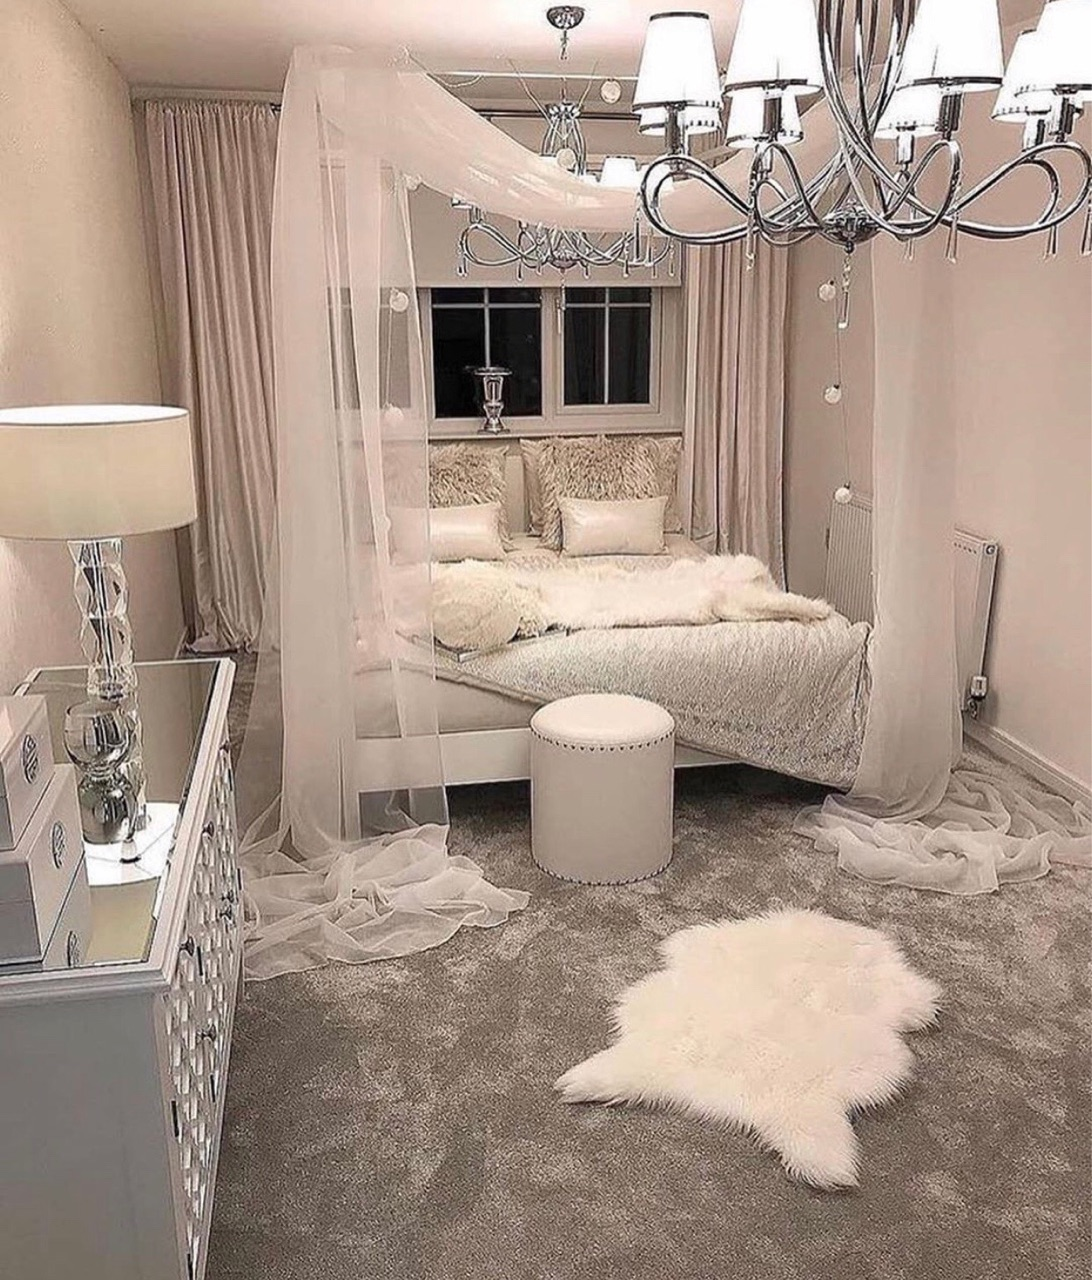 Cute Bedroom Ideas Share Discovered By Skgoing On